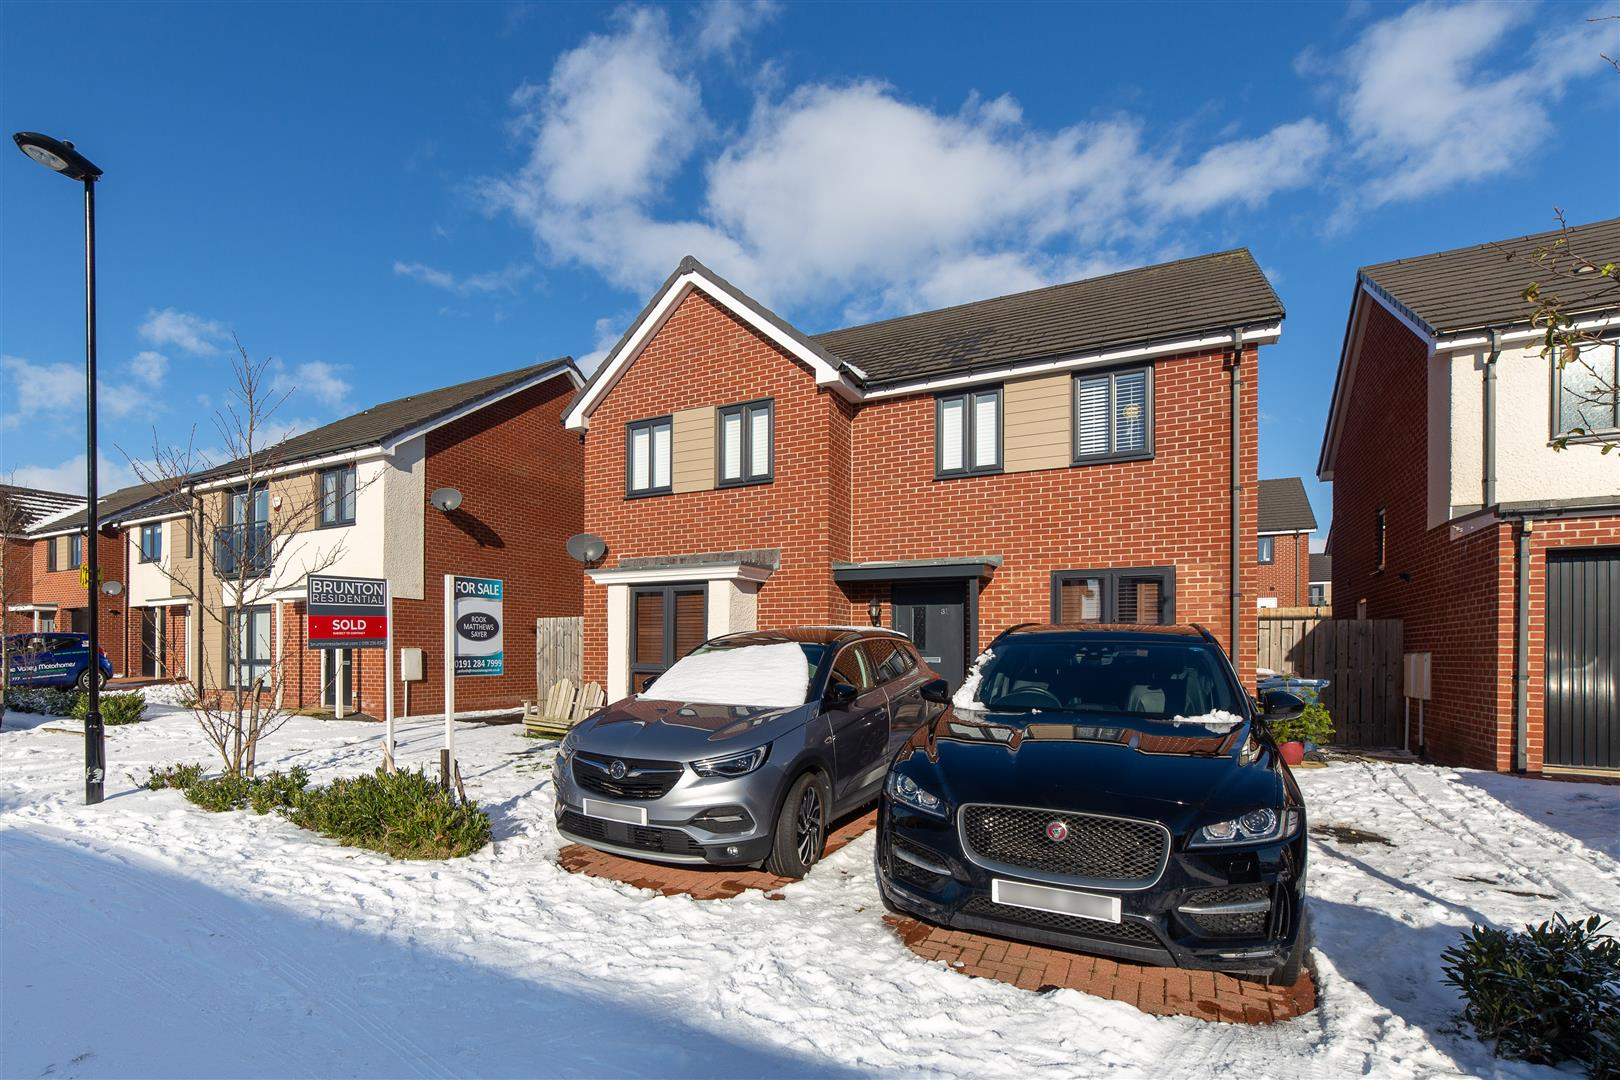 4 bed detached house for sale in Great Park, NE13 9DD, NE13